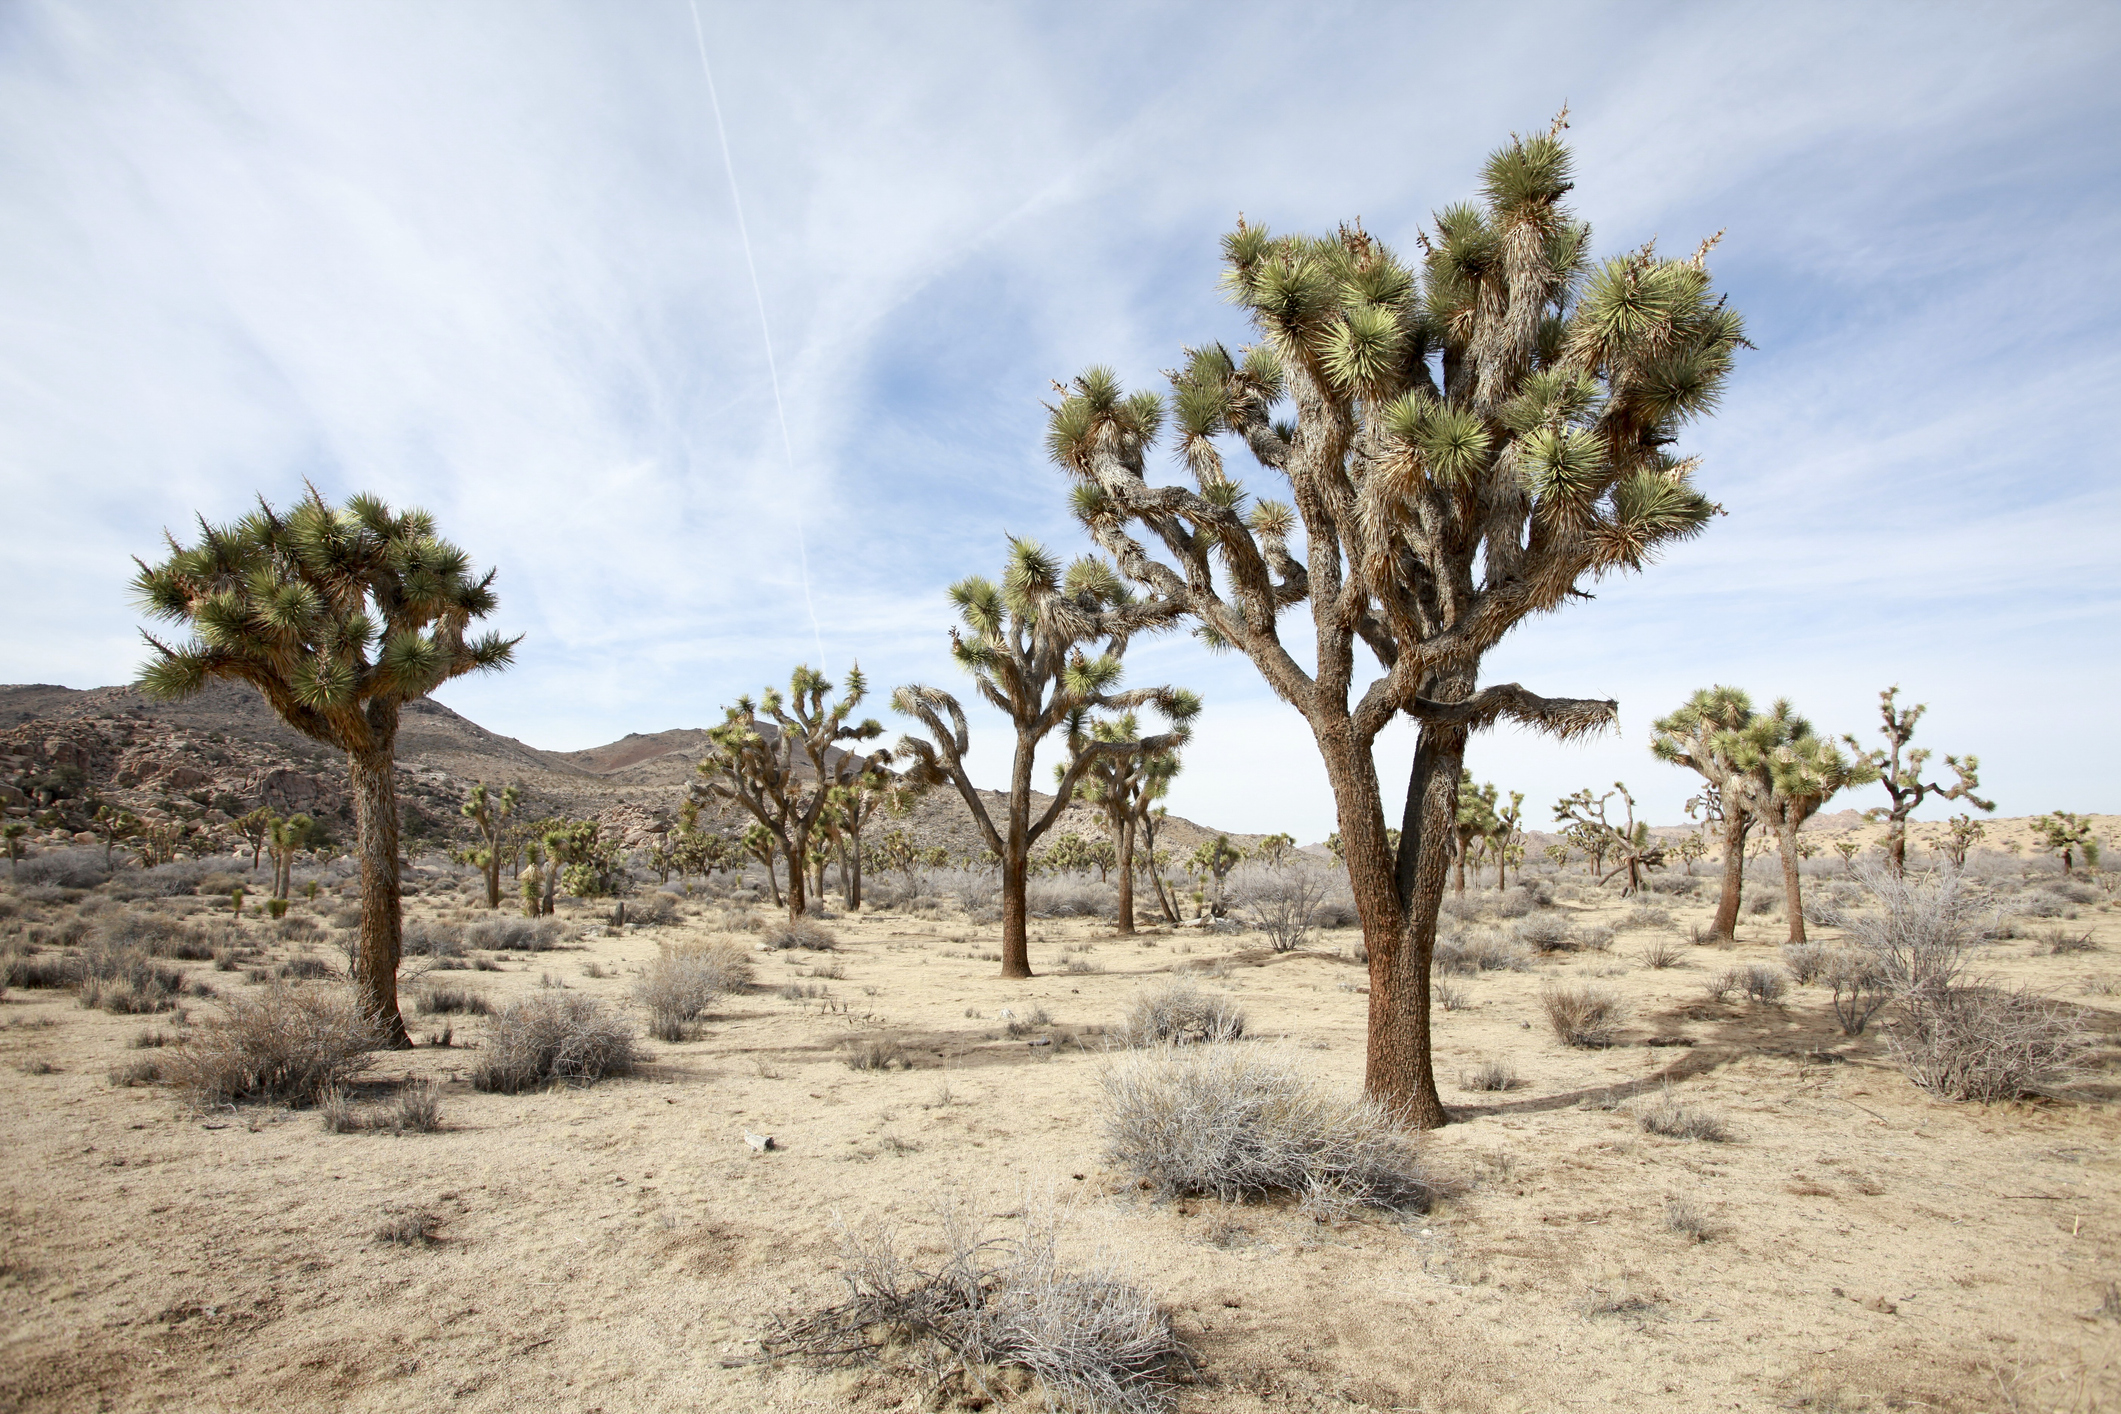 Scientists Say Joshua Trees Could Be Depleted by 2070 Due to Climate Change